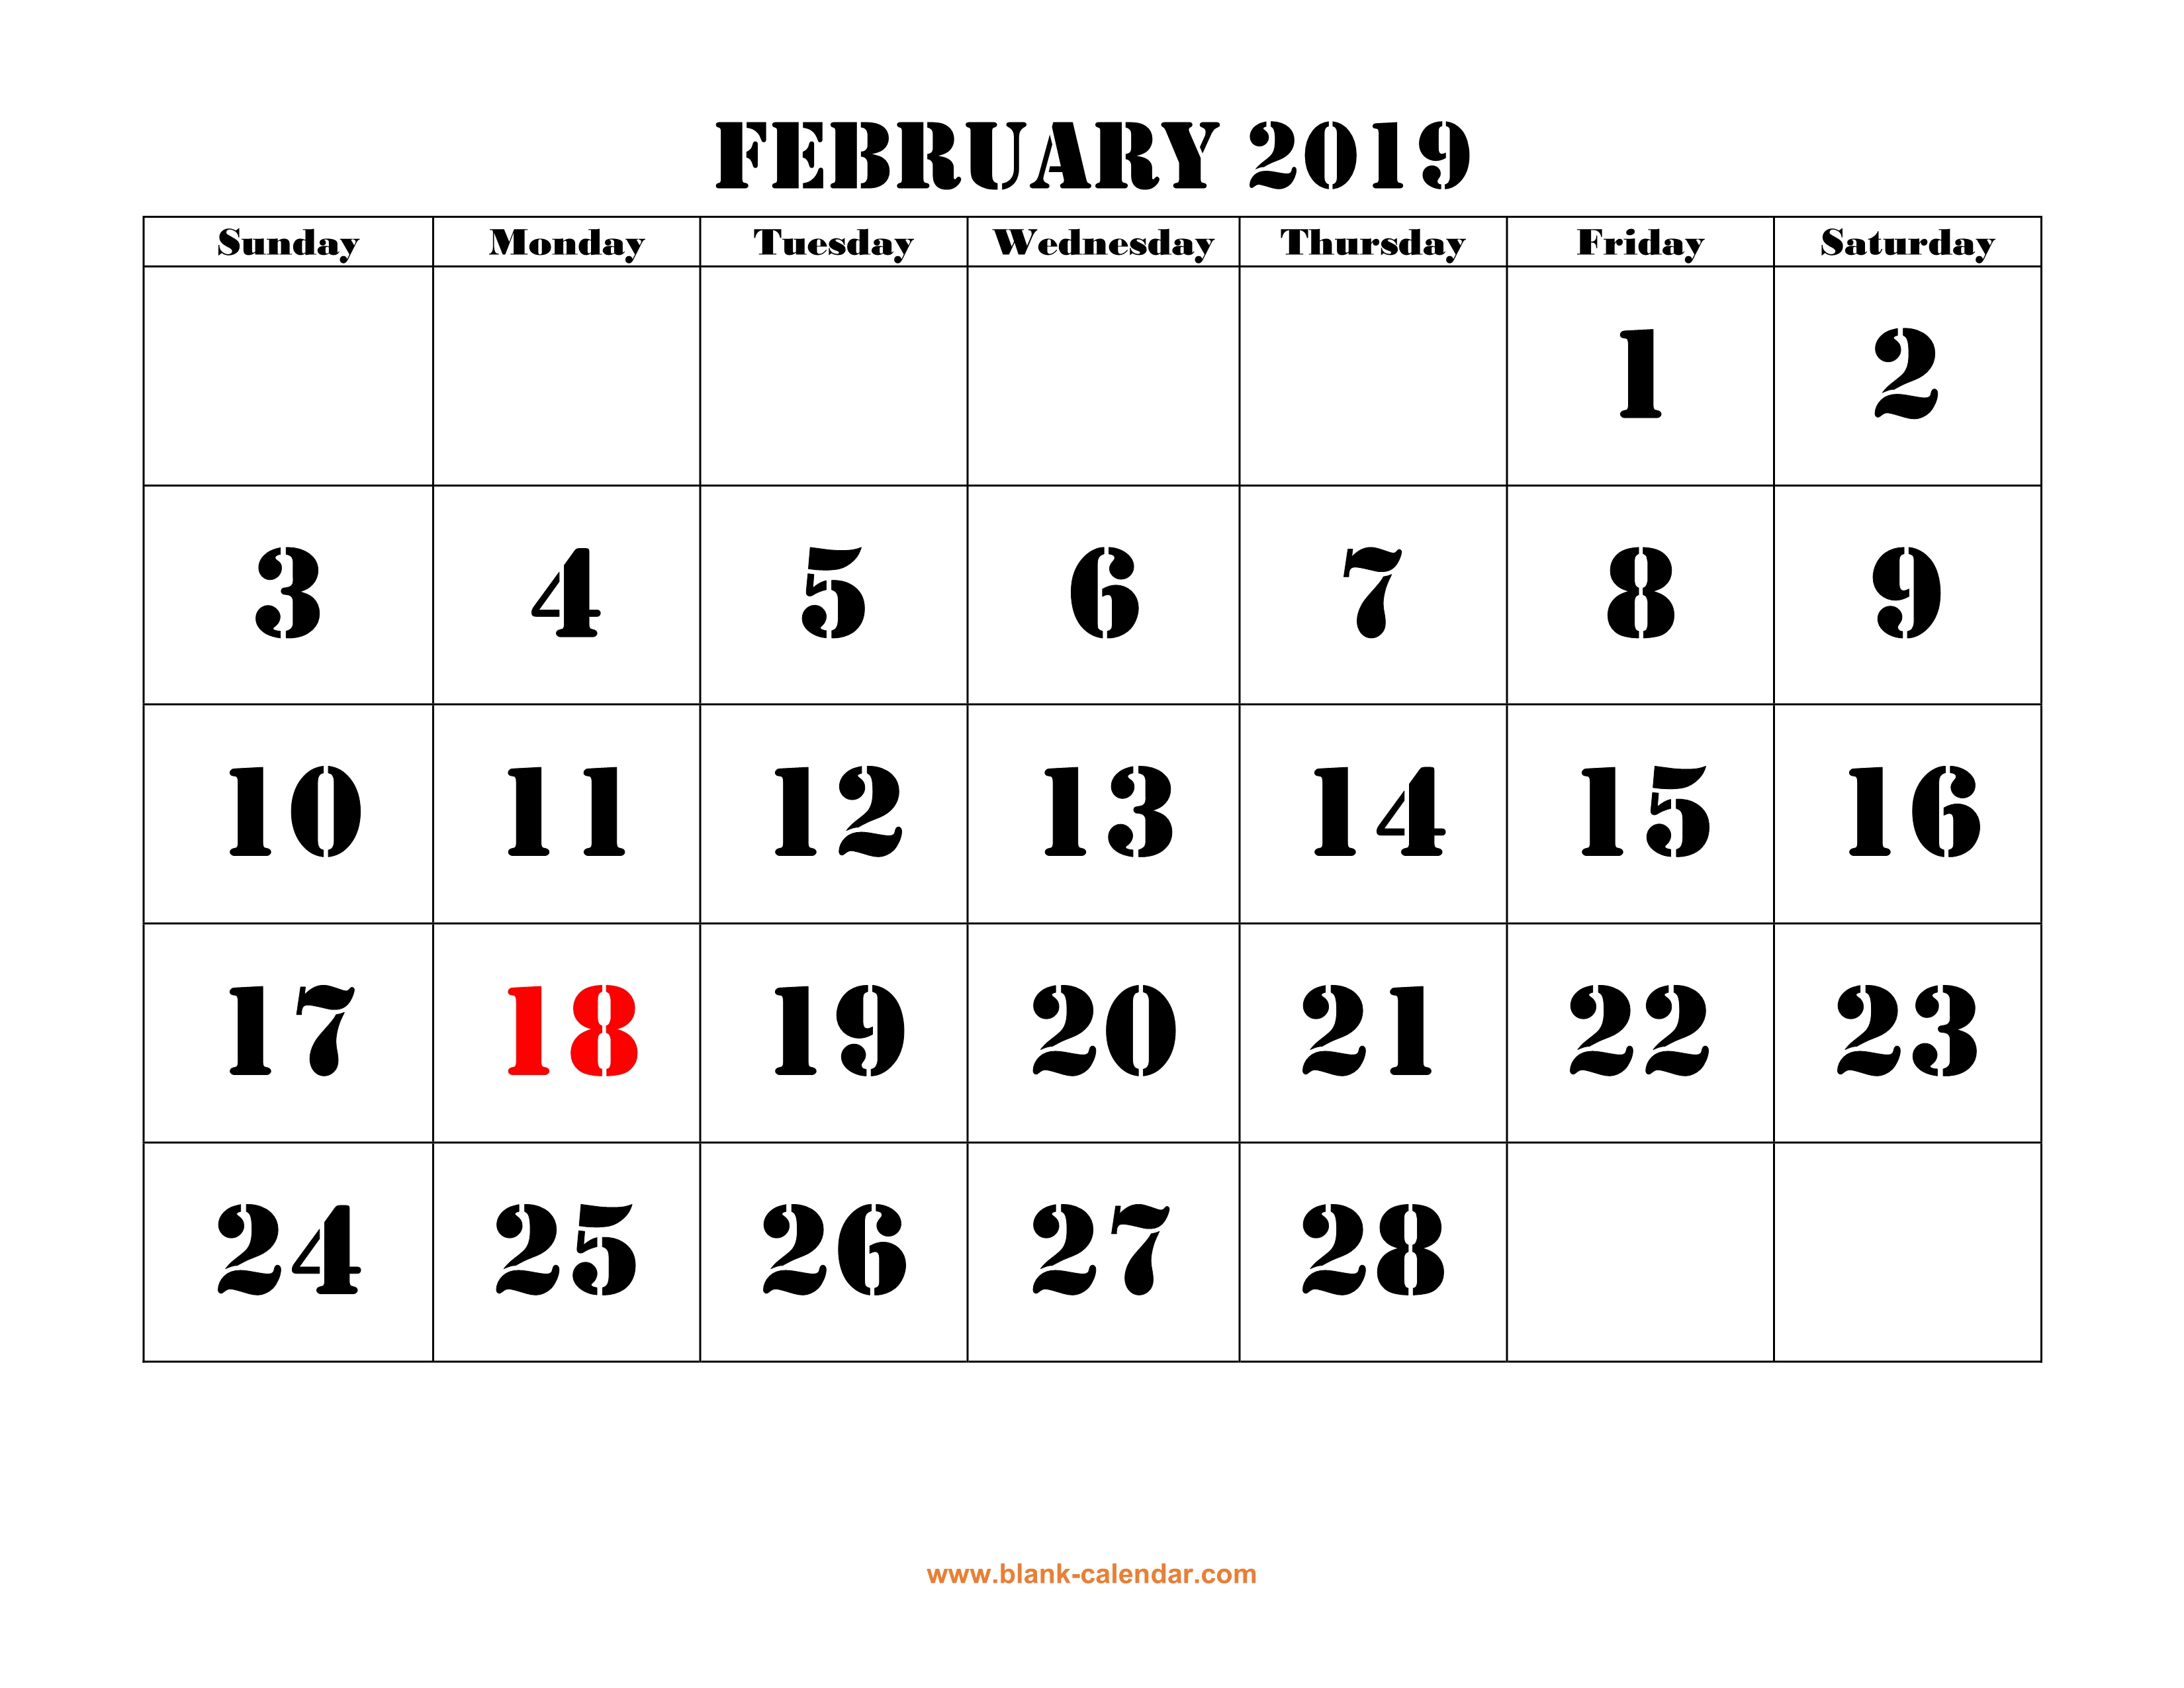 Free Download Printable February 2019 Calendar, Large Font Design